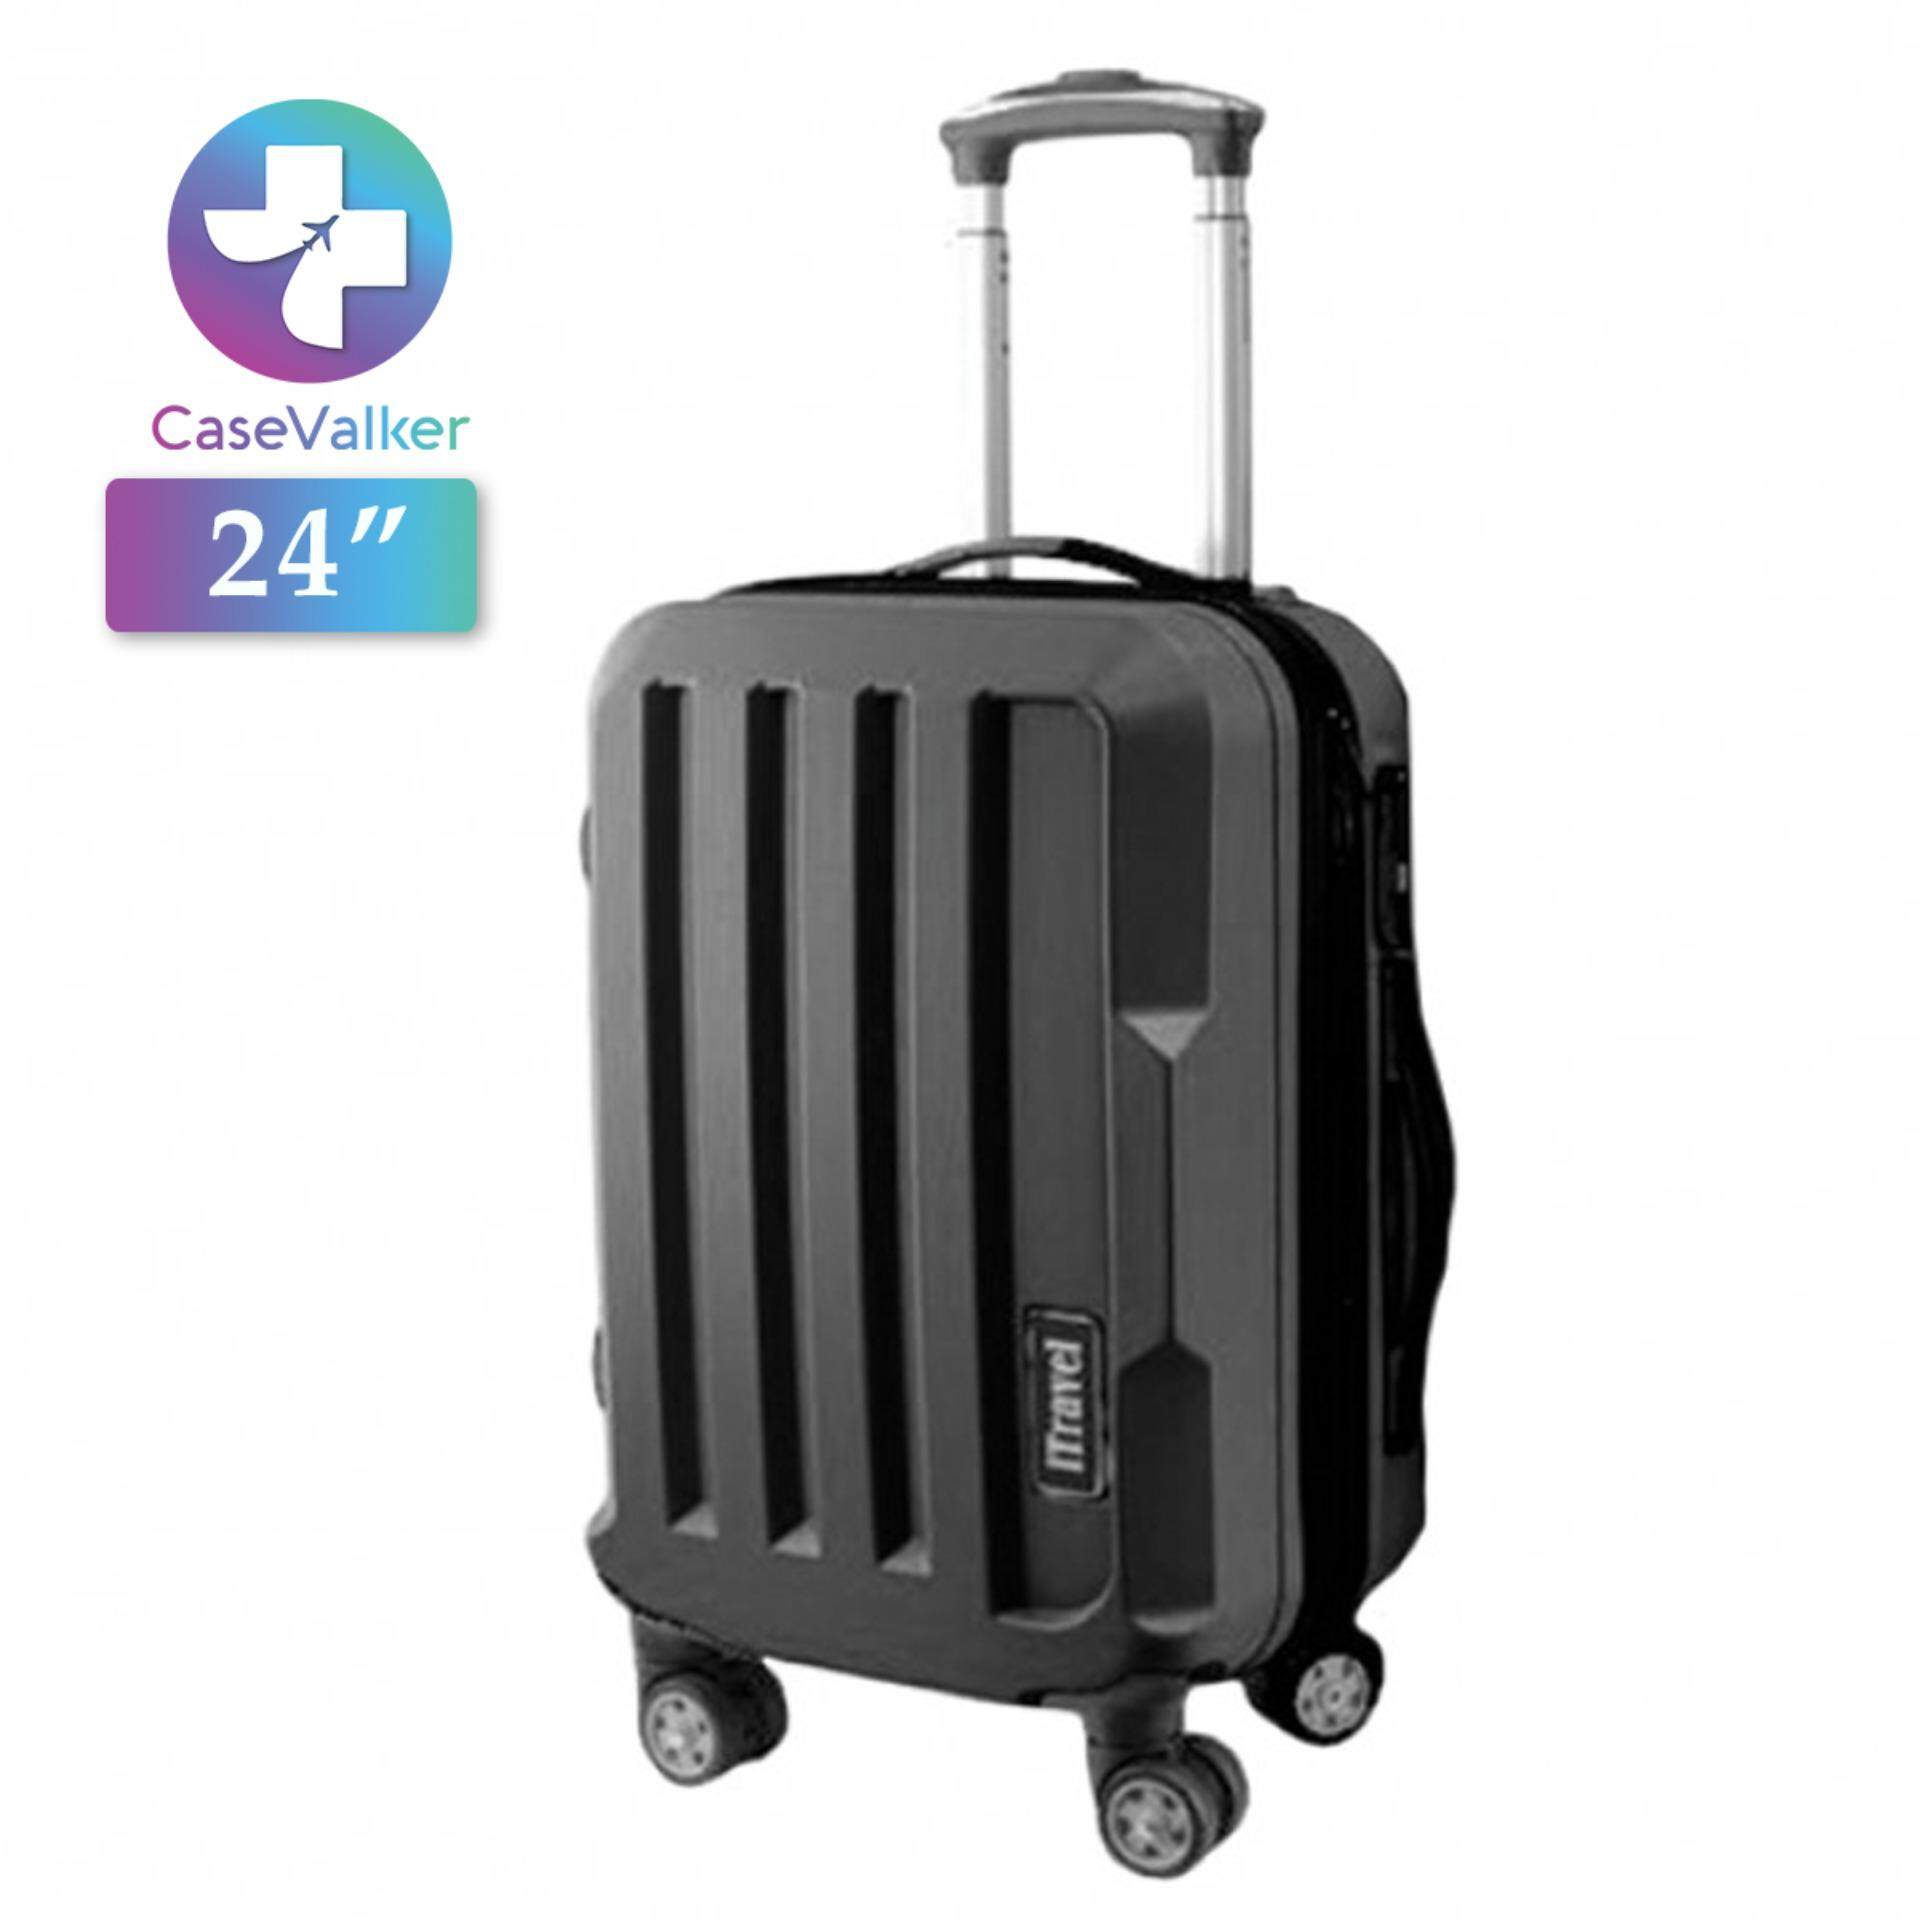 Suitcases - Buy Suitcases at Best Price in Malaysia  bf888b36714e2